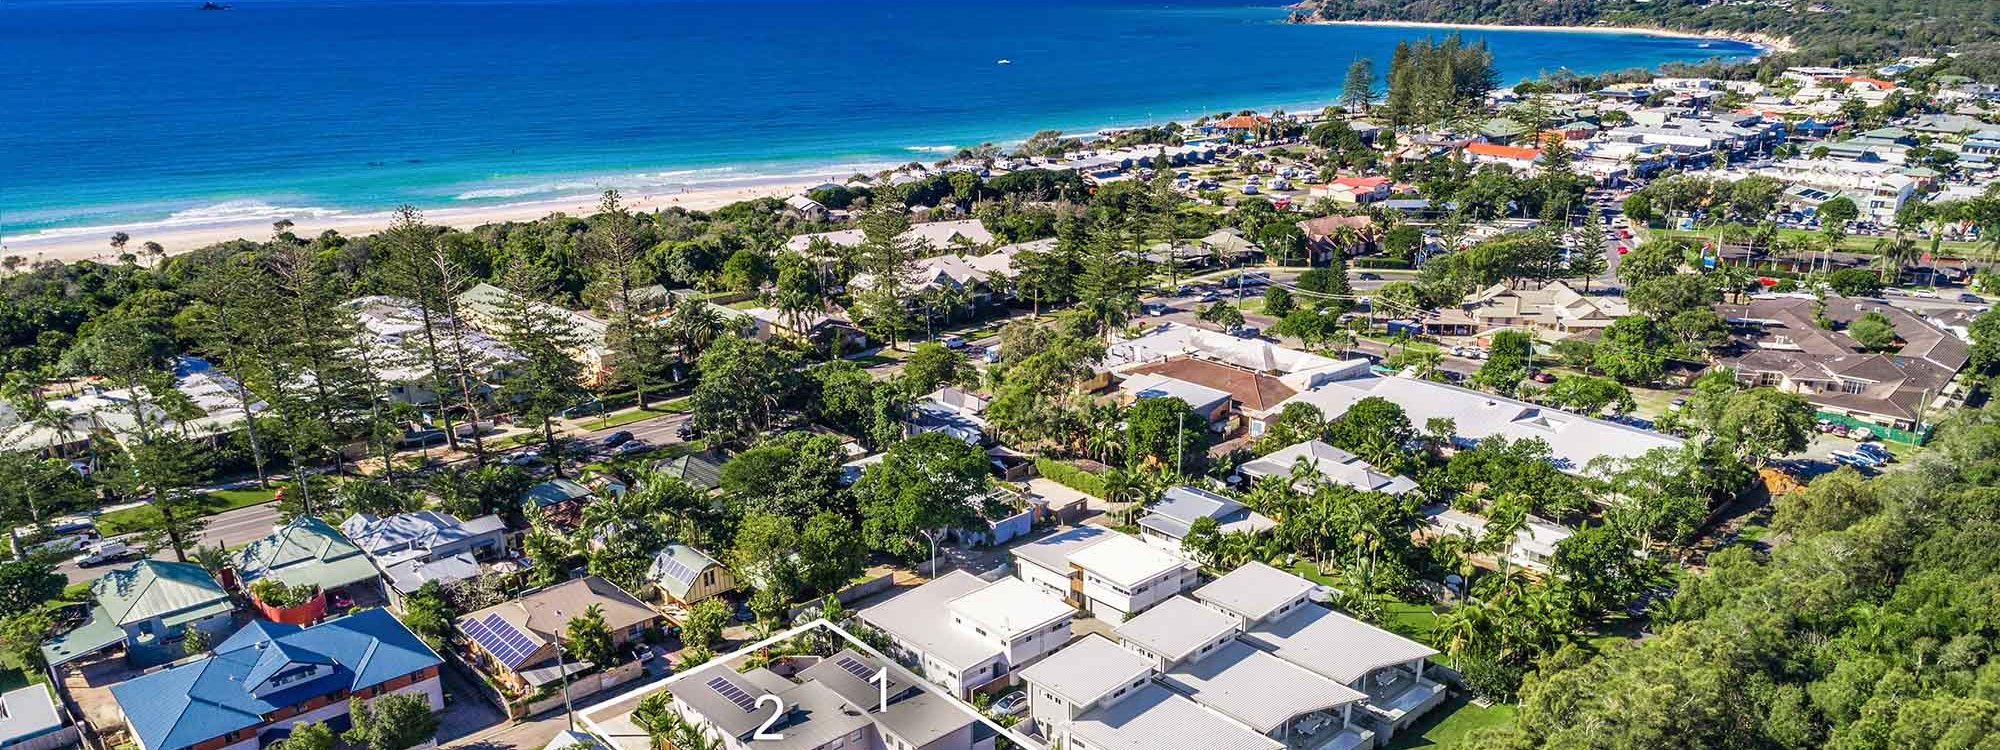 Clique 3 - Byron Bay - Aerial Towards Cape Byron Outline